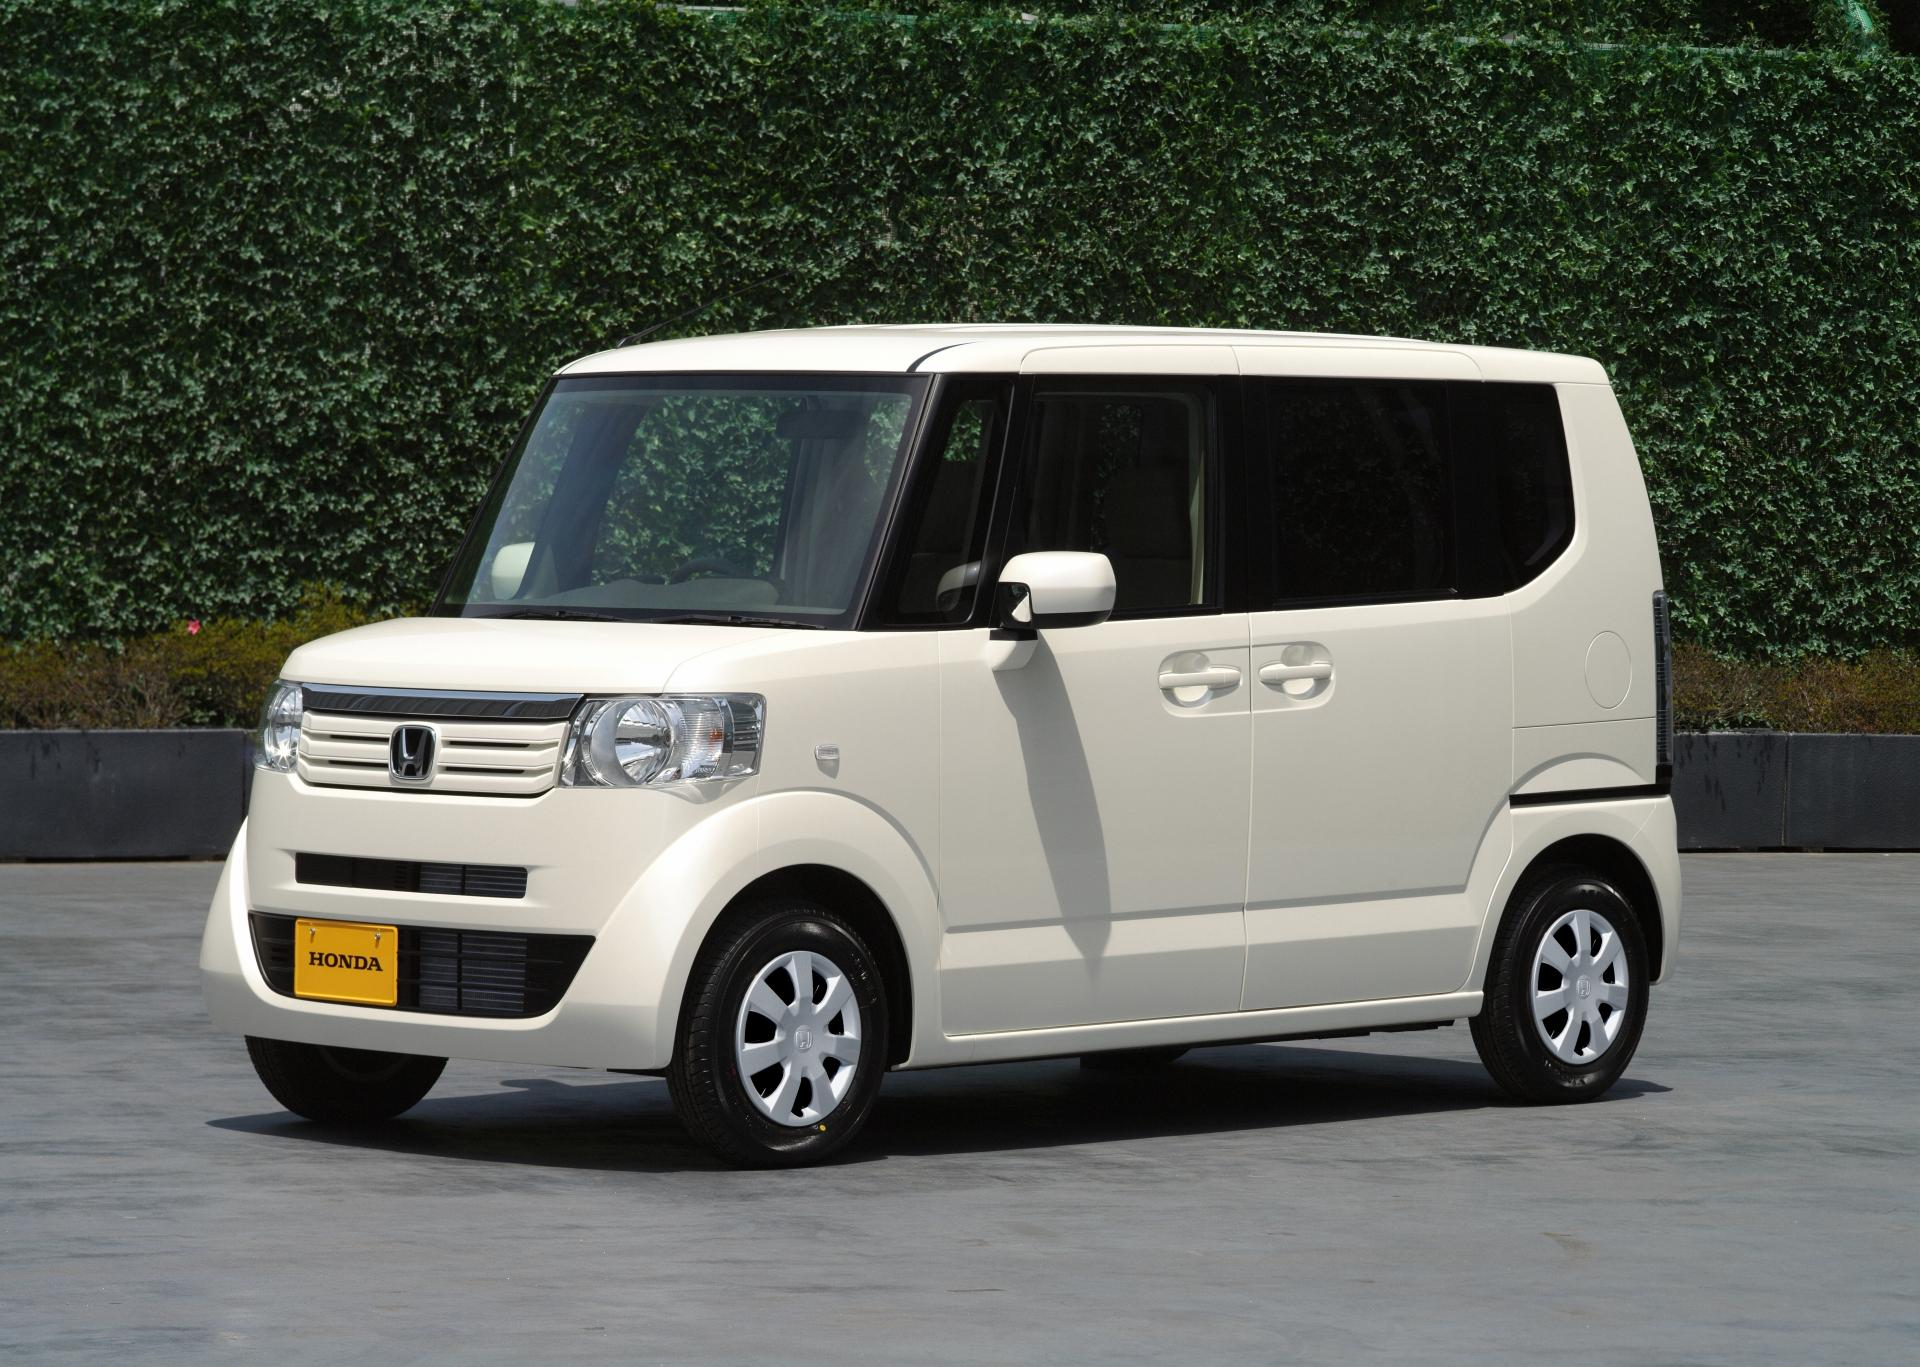 2012 Honda N Box Concept News and Information, Research ...